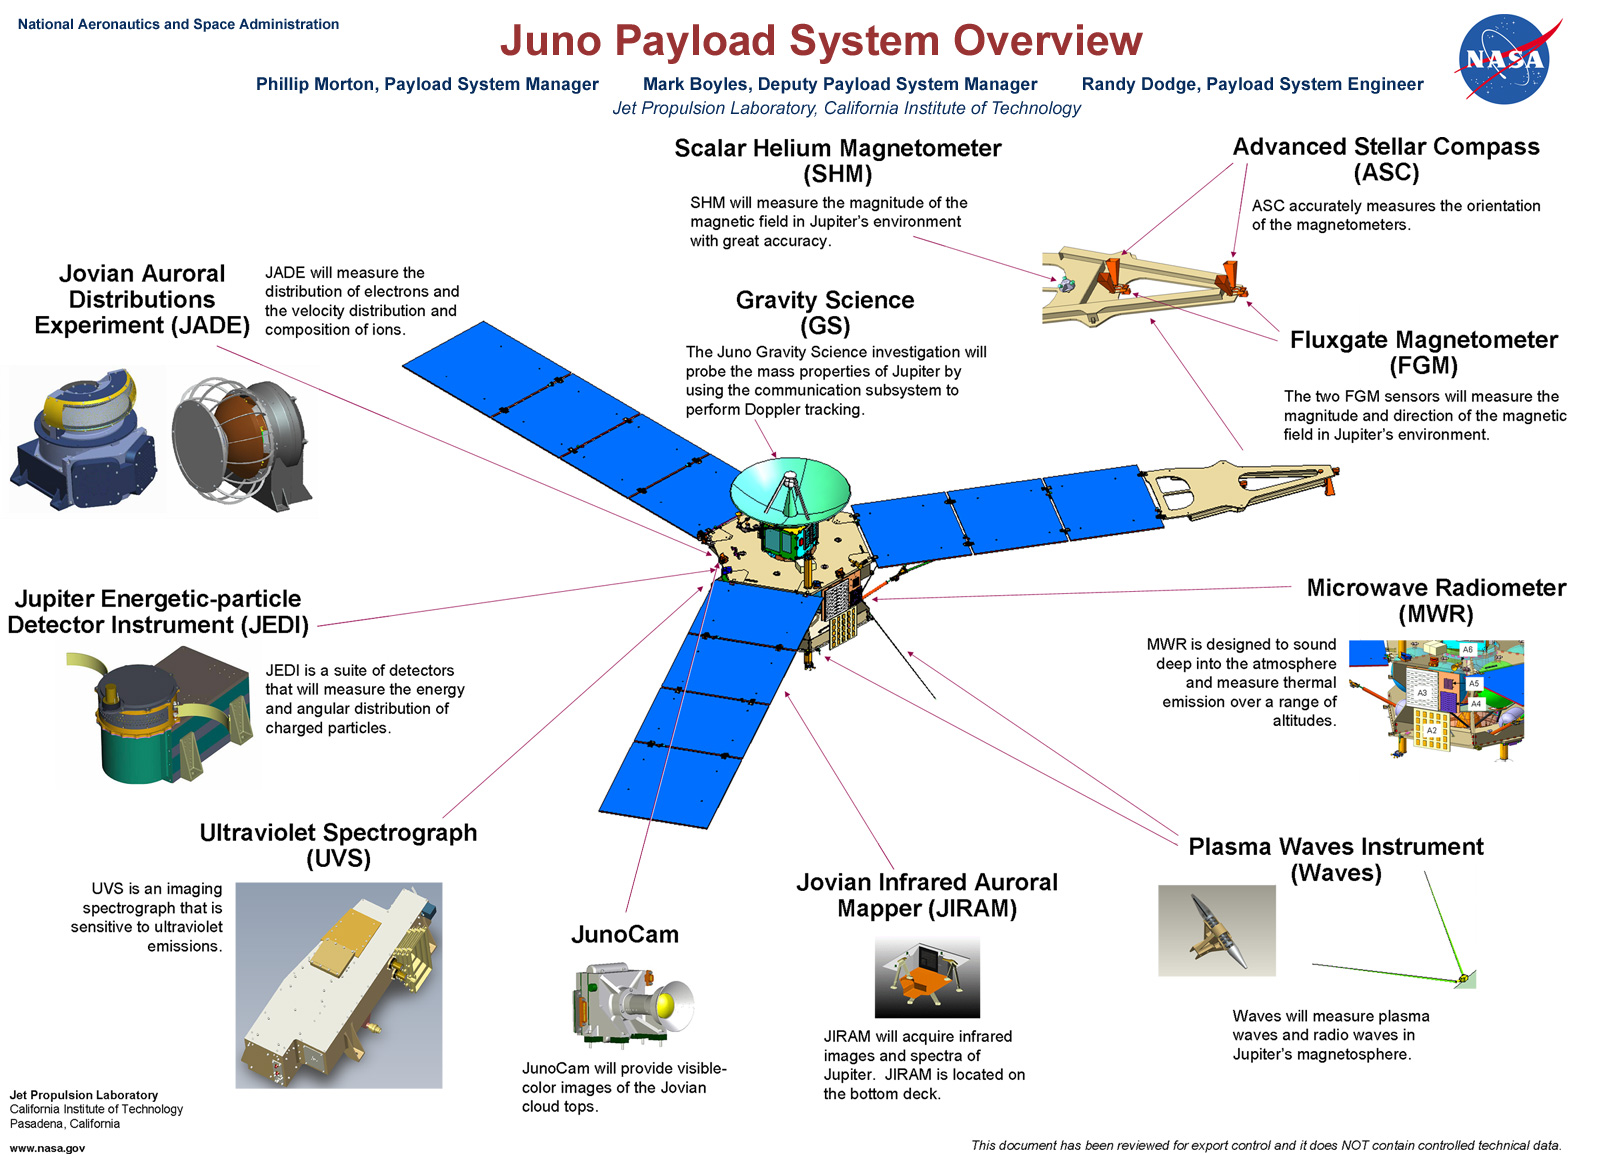 http://d1jqu7g1y74ds1.cloudfront.net/wp-content/uploads/2008/11/juno-payload-system.jpg